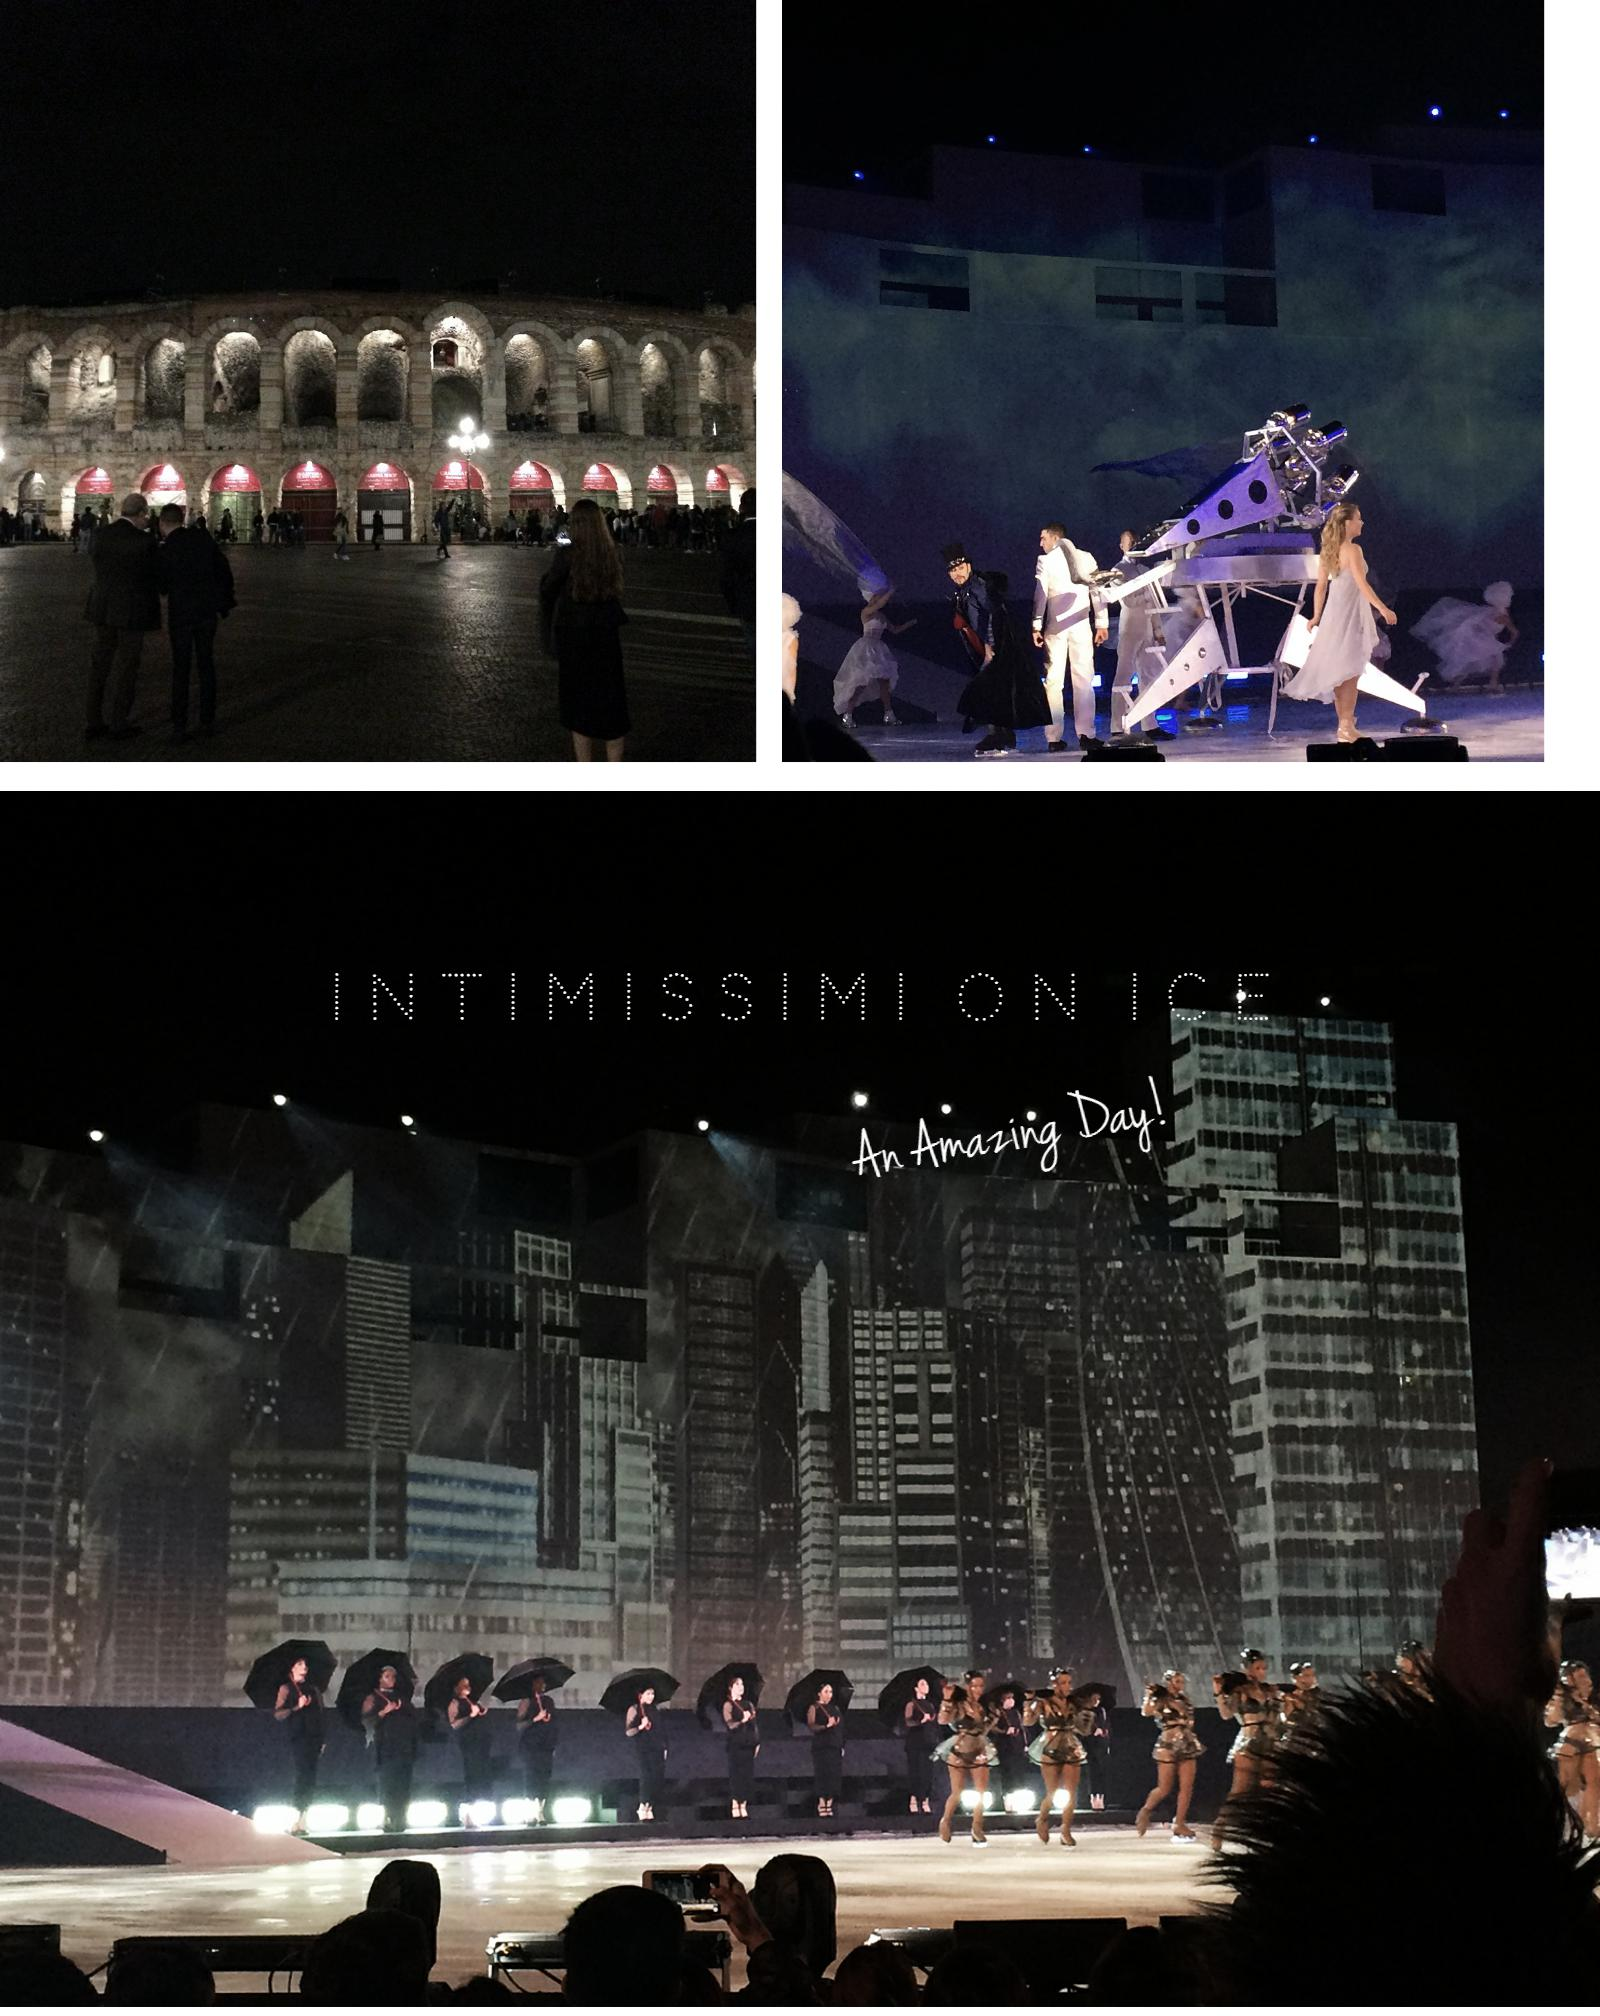 imtimissimi-on-ice-verona-italy